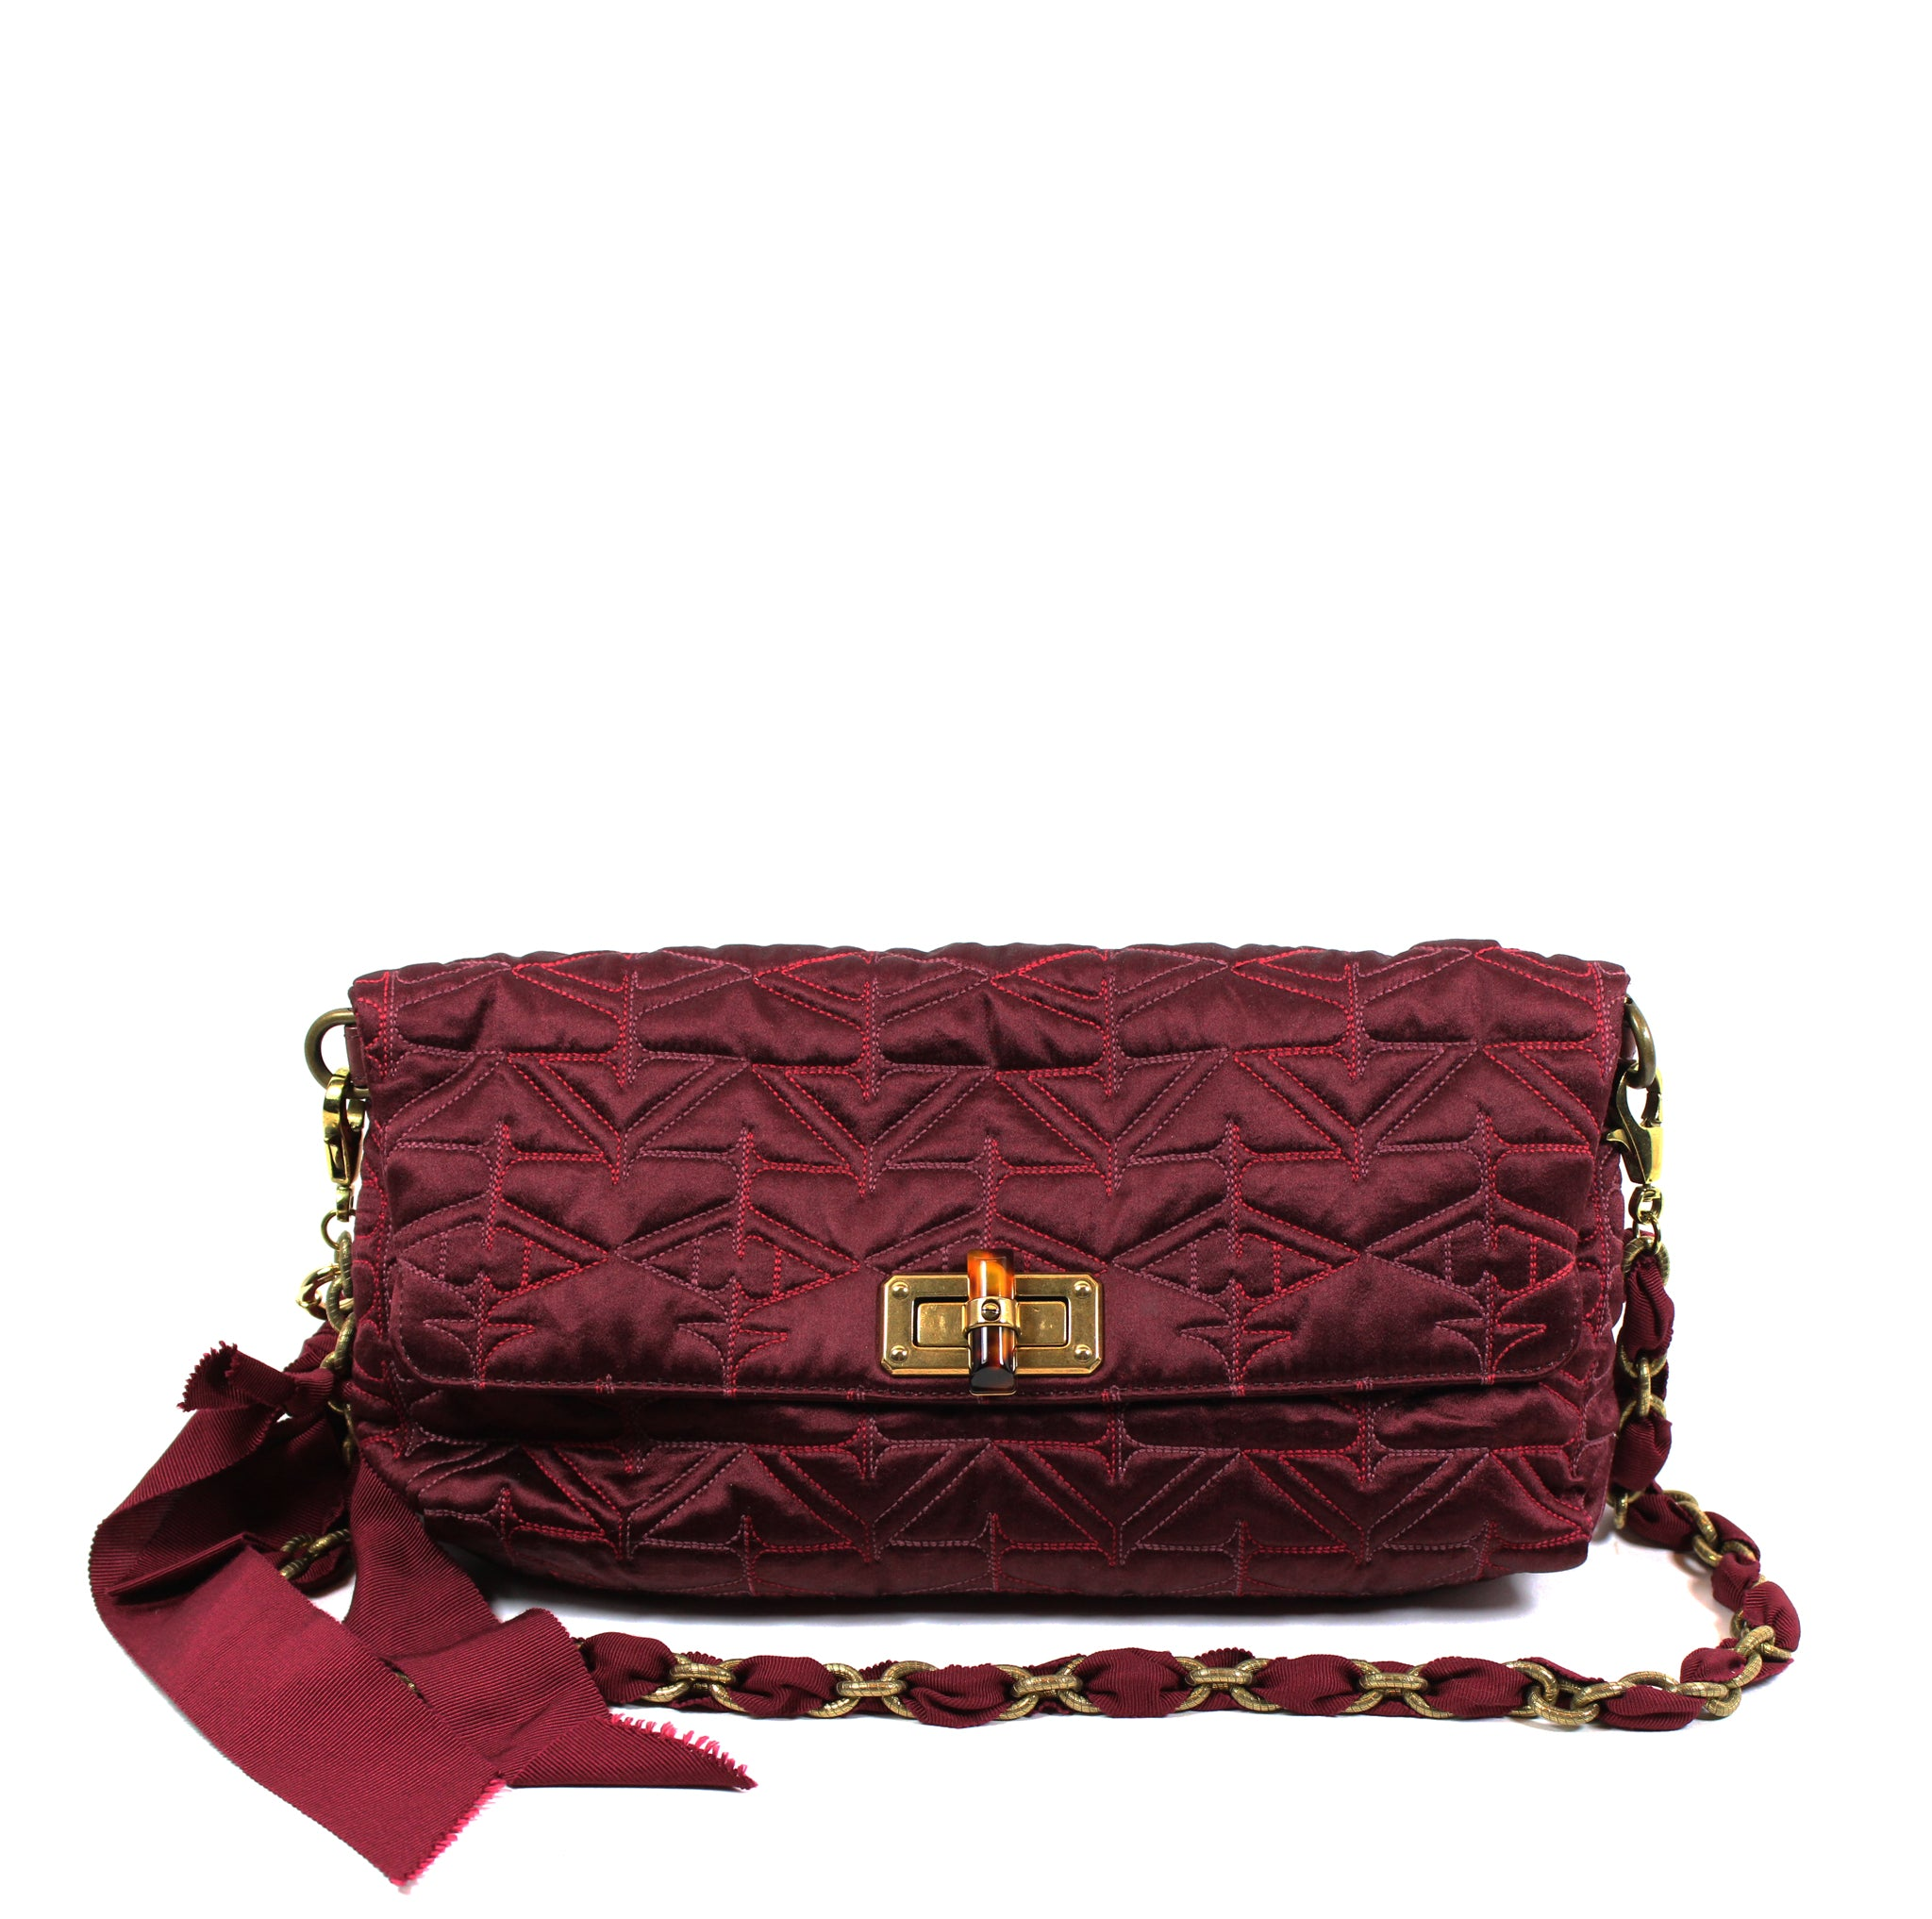 Lanvin 39 Happy 39 Wine Red Satin Shoulder Bag With Chain